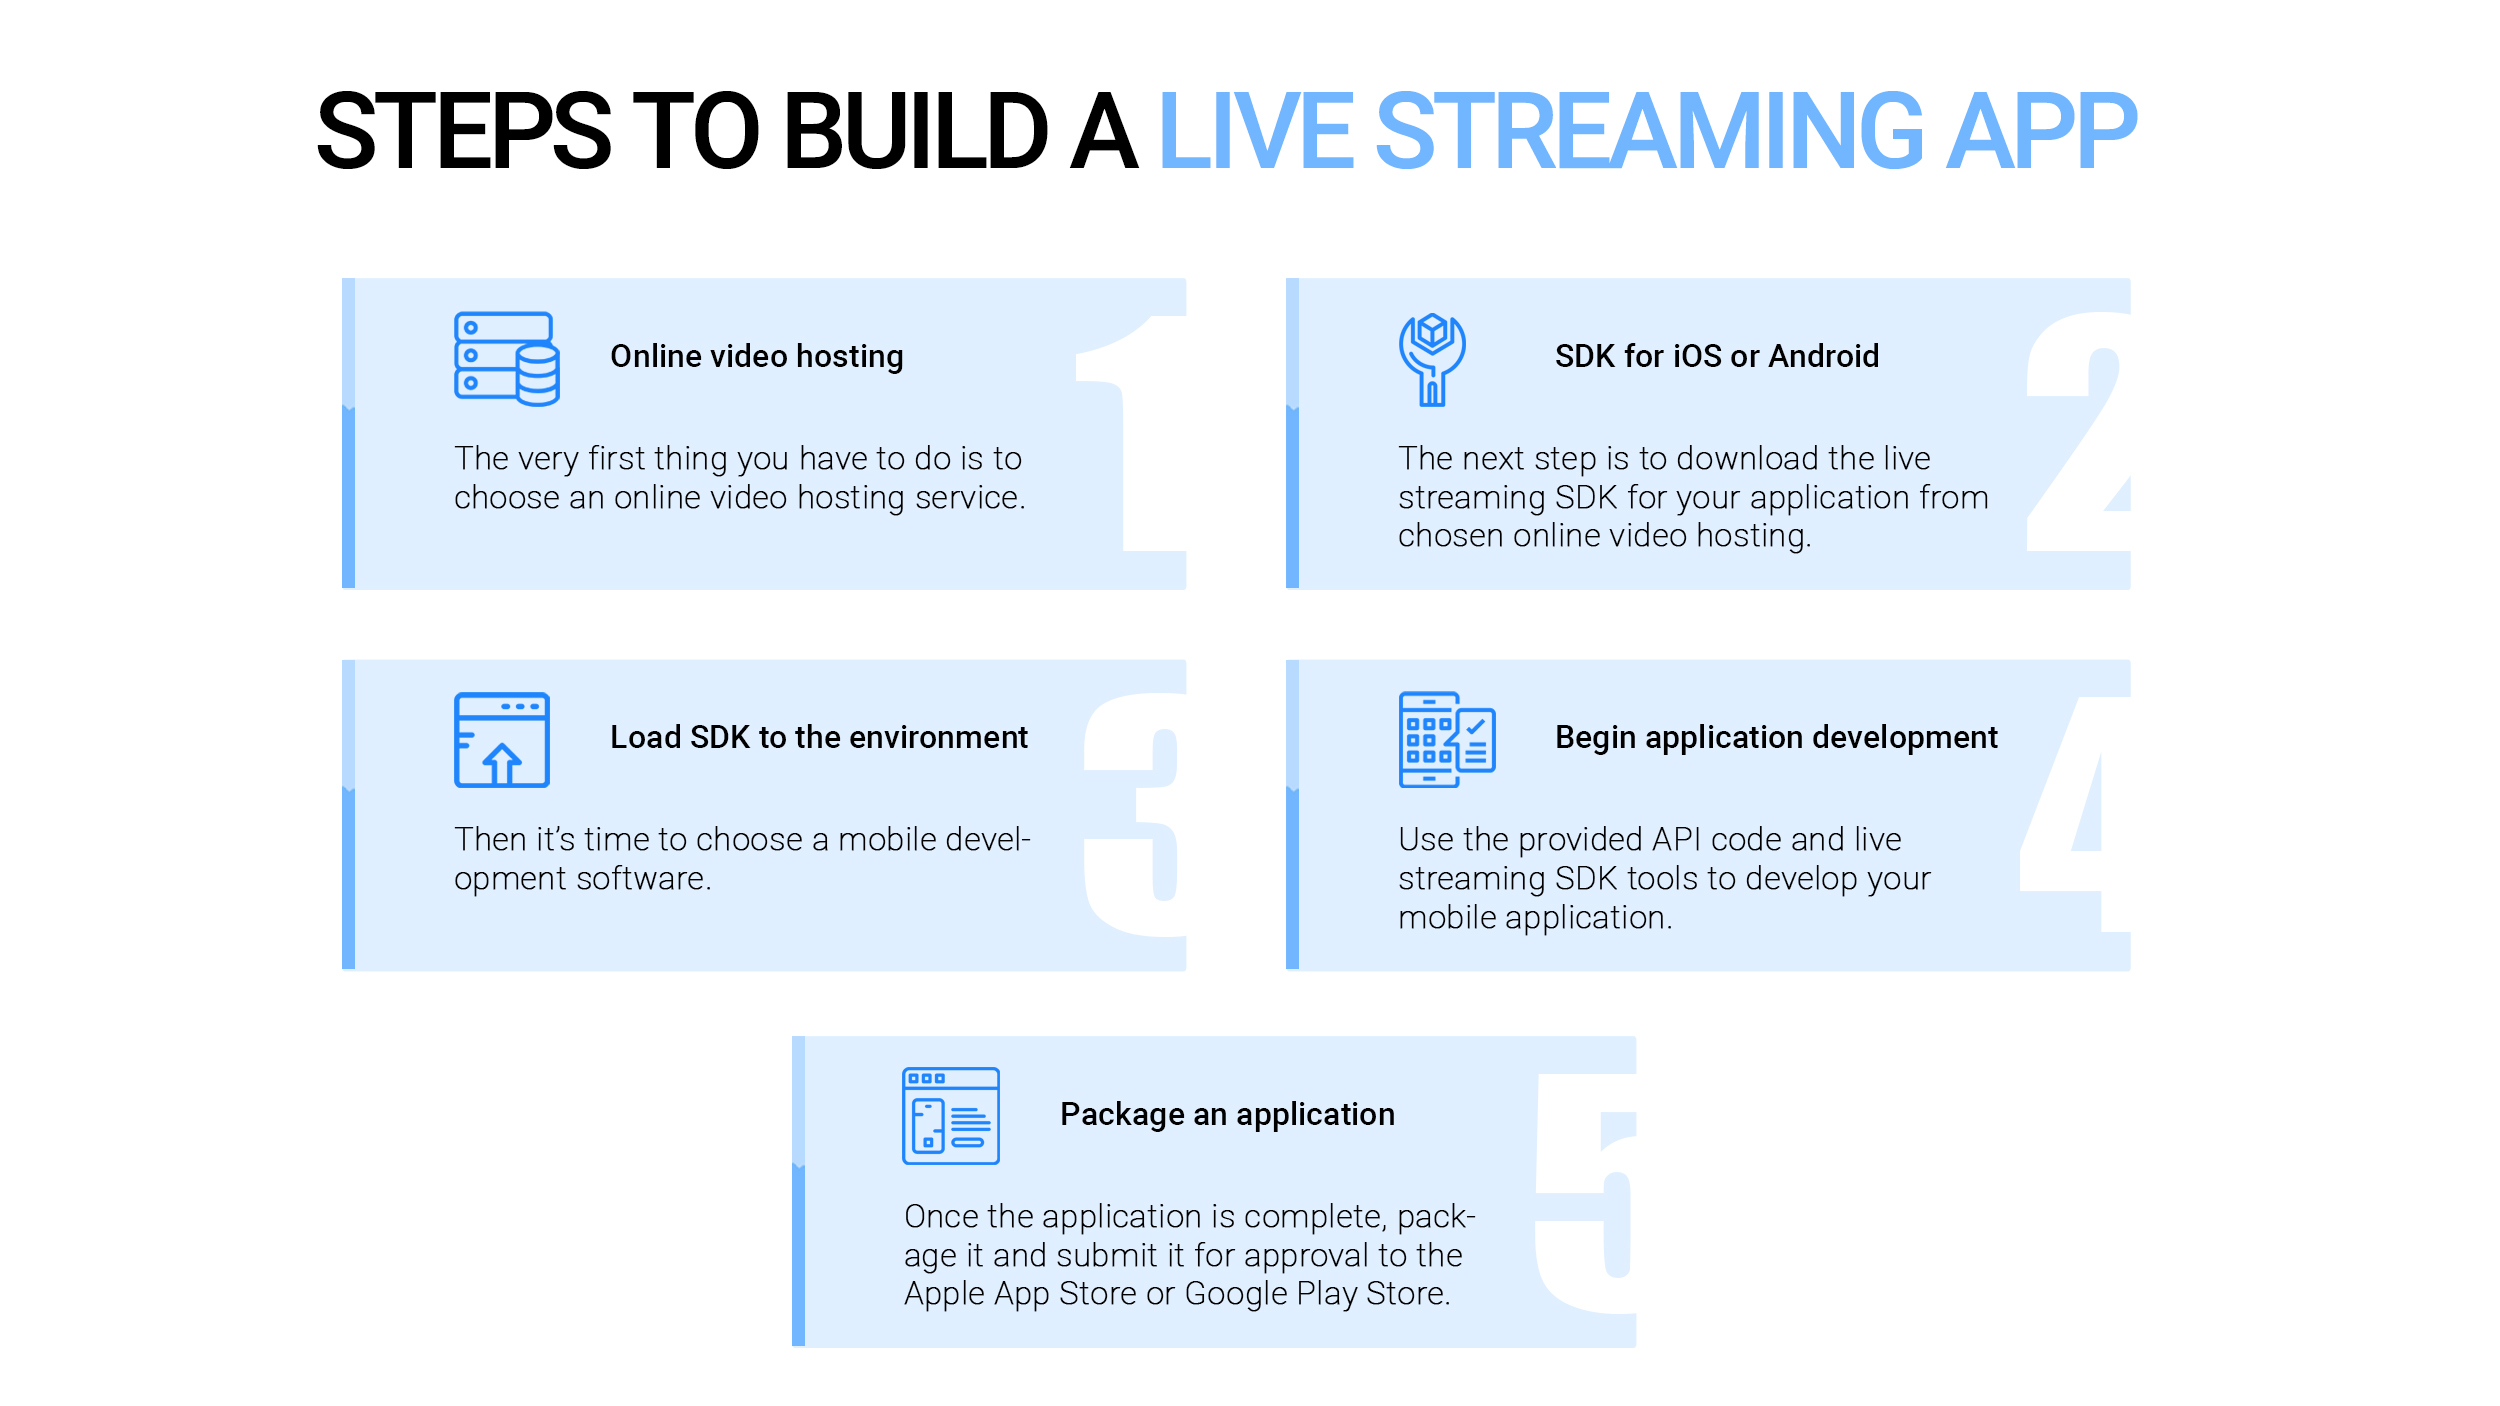 Steps to build a live video streaming app